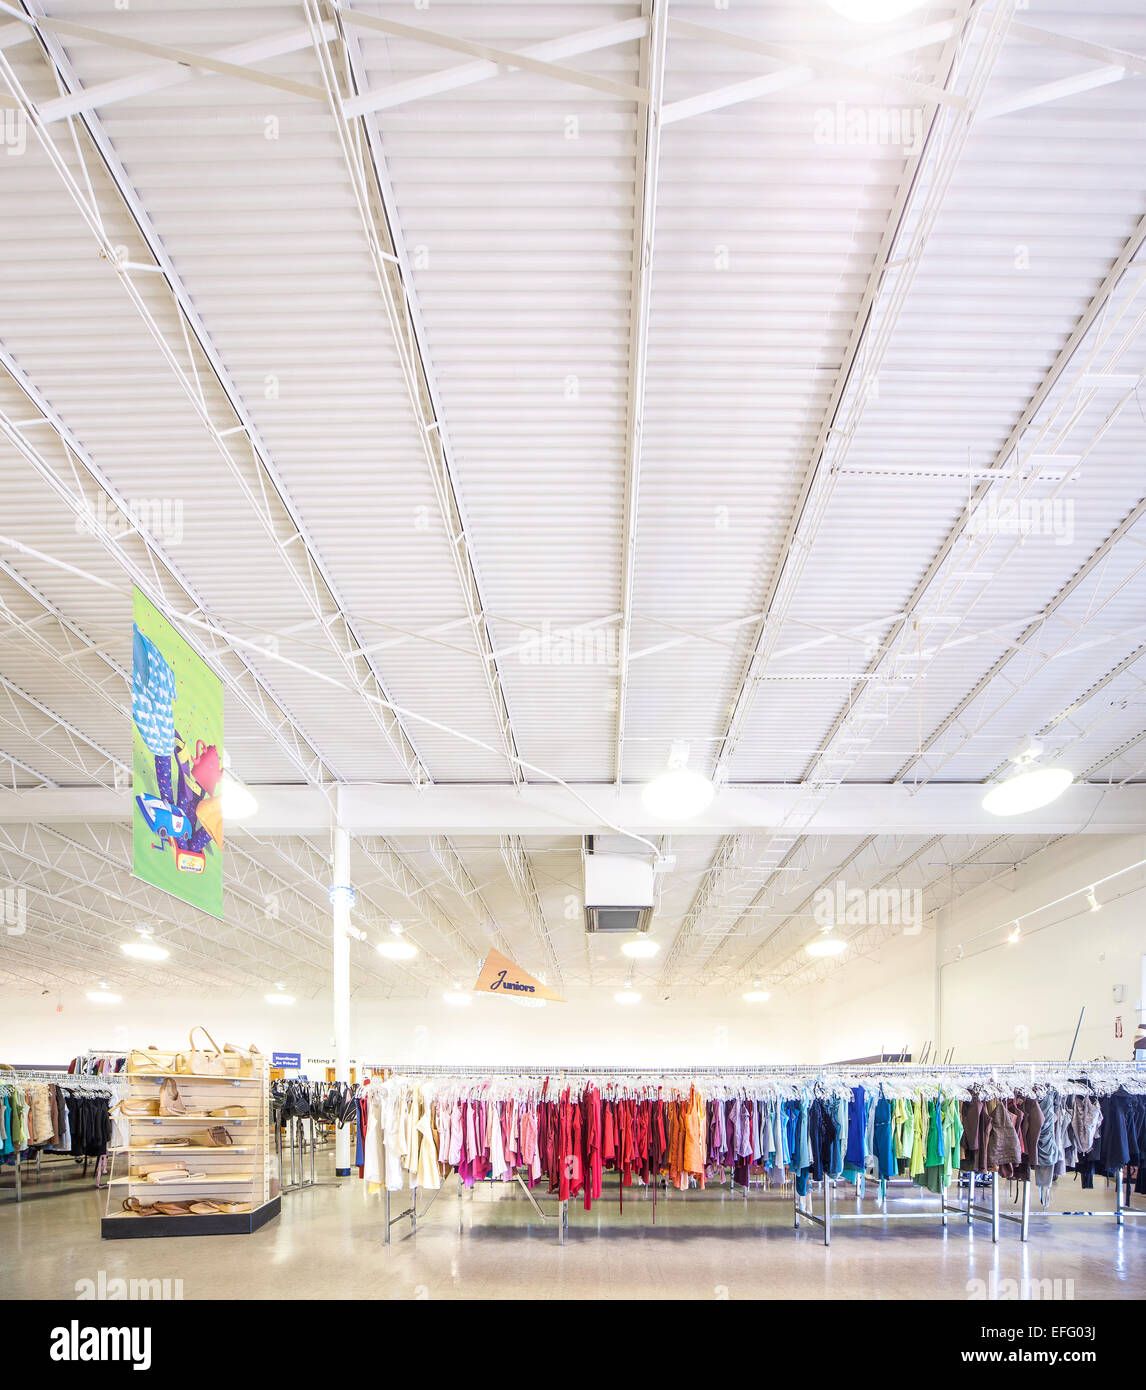 Ft Lauderdale Goodwill Industries Superstore interior. Thrift store, thrift shop, charity shop with color coded - Stock Image